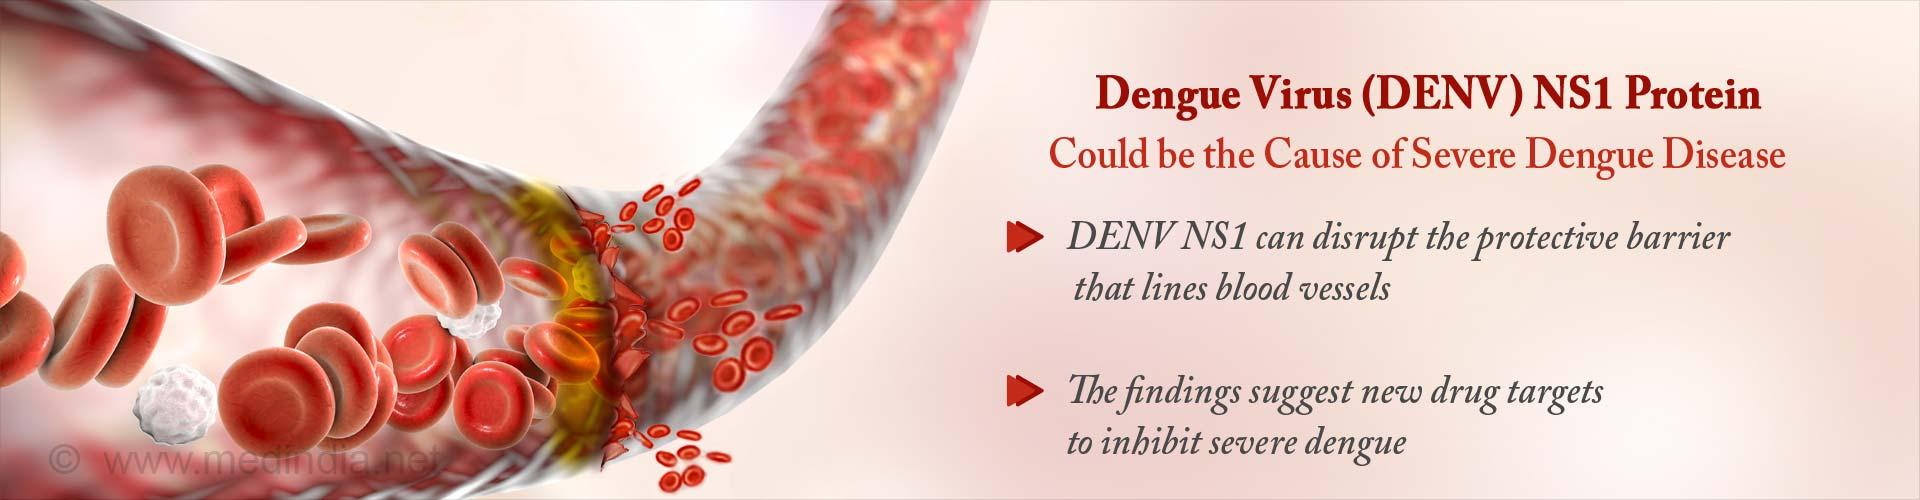 dengue virus (DENV) NS1 protein could be the cause of severe dengue disease - (DENV) NS1 can disrupt the protective barrier that lines blood vessels - The findings suggest new drug targets to inhibit severe dengue